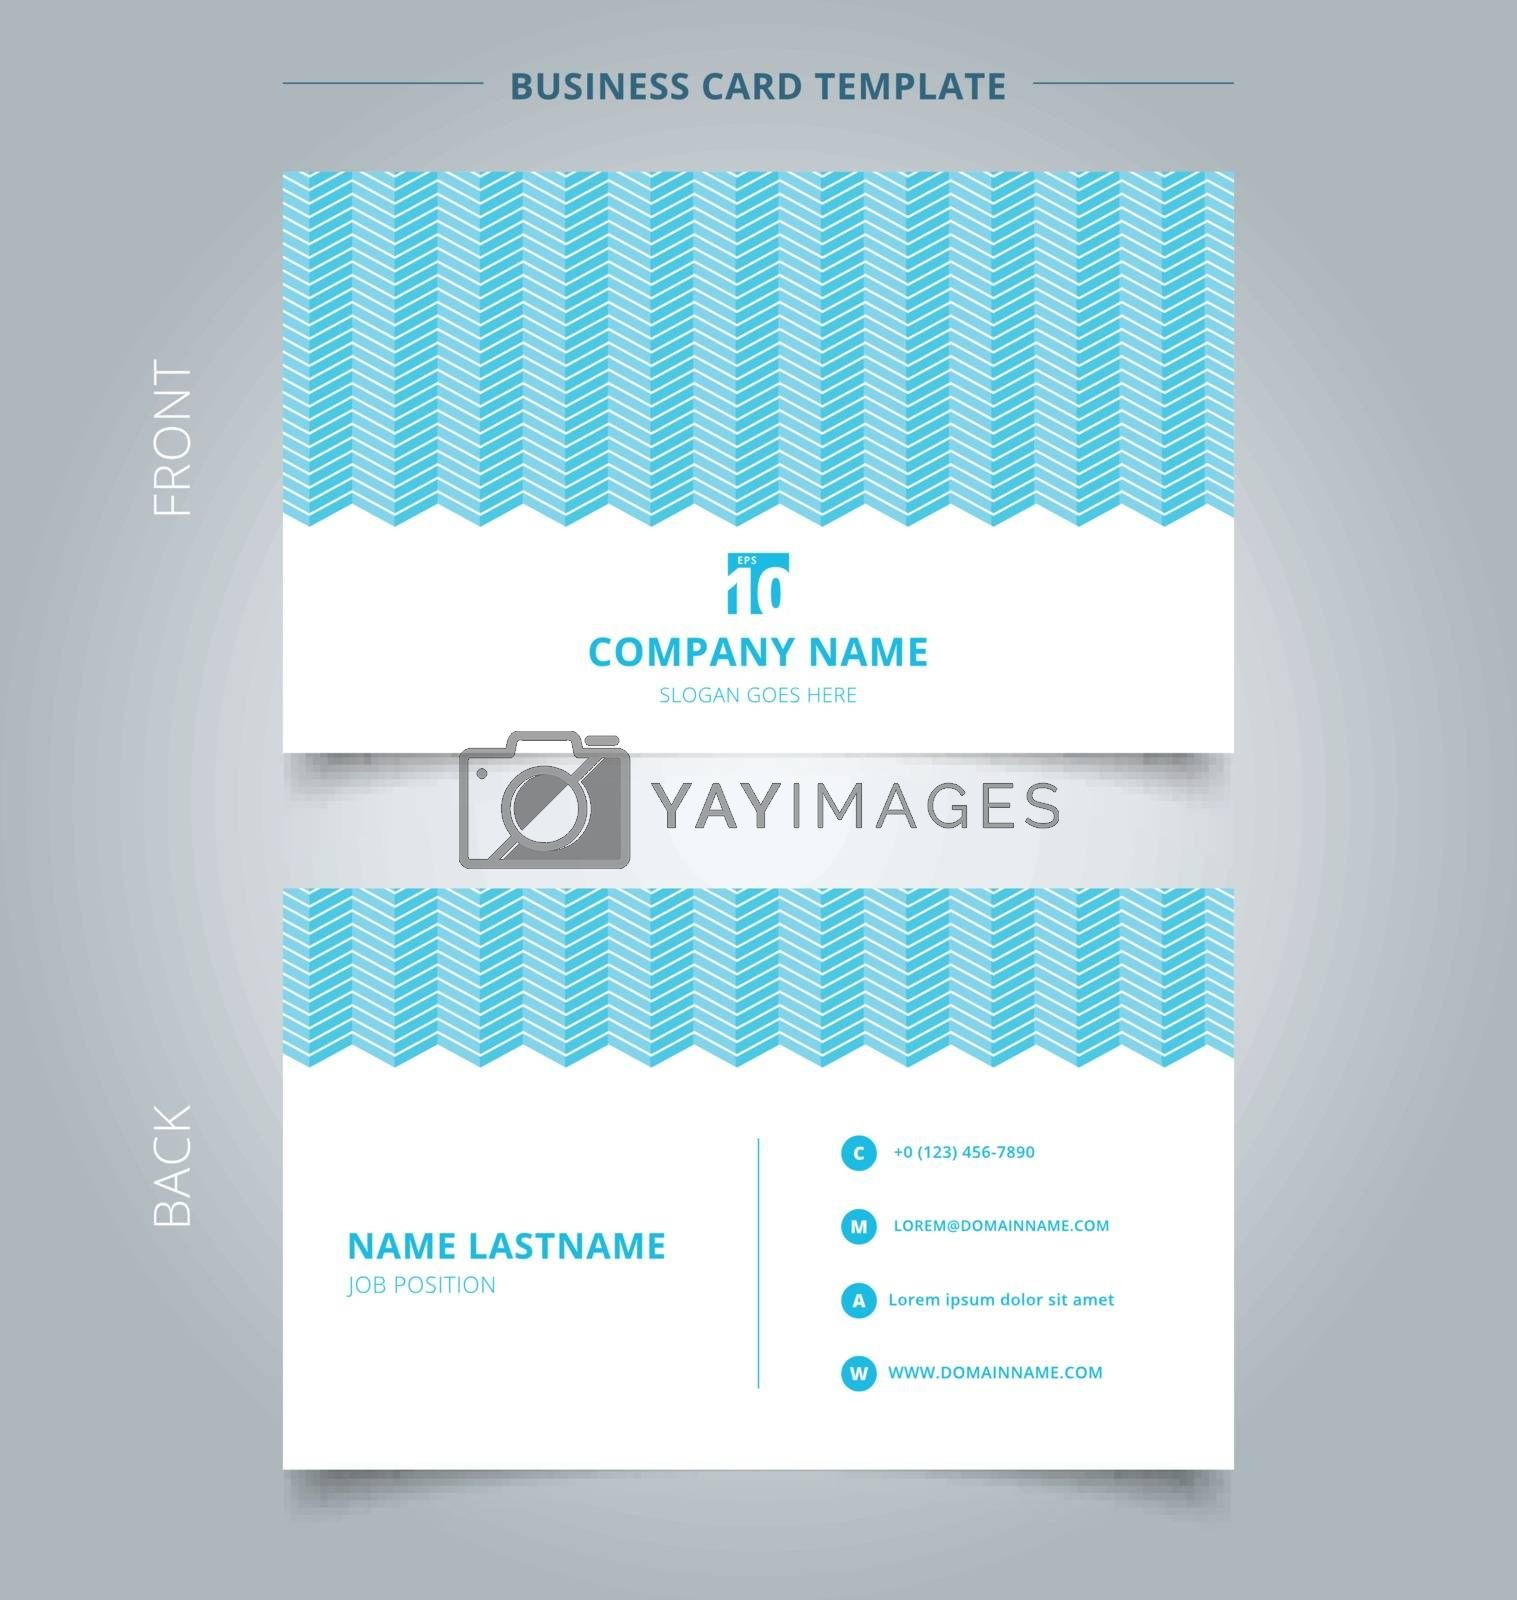 Namecard template white color serrated lines pattern on blue background. Vector illustration